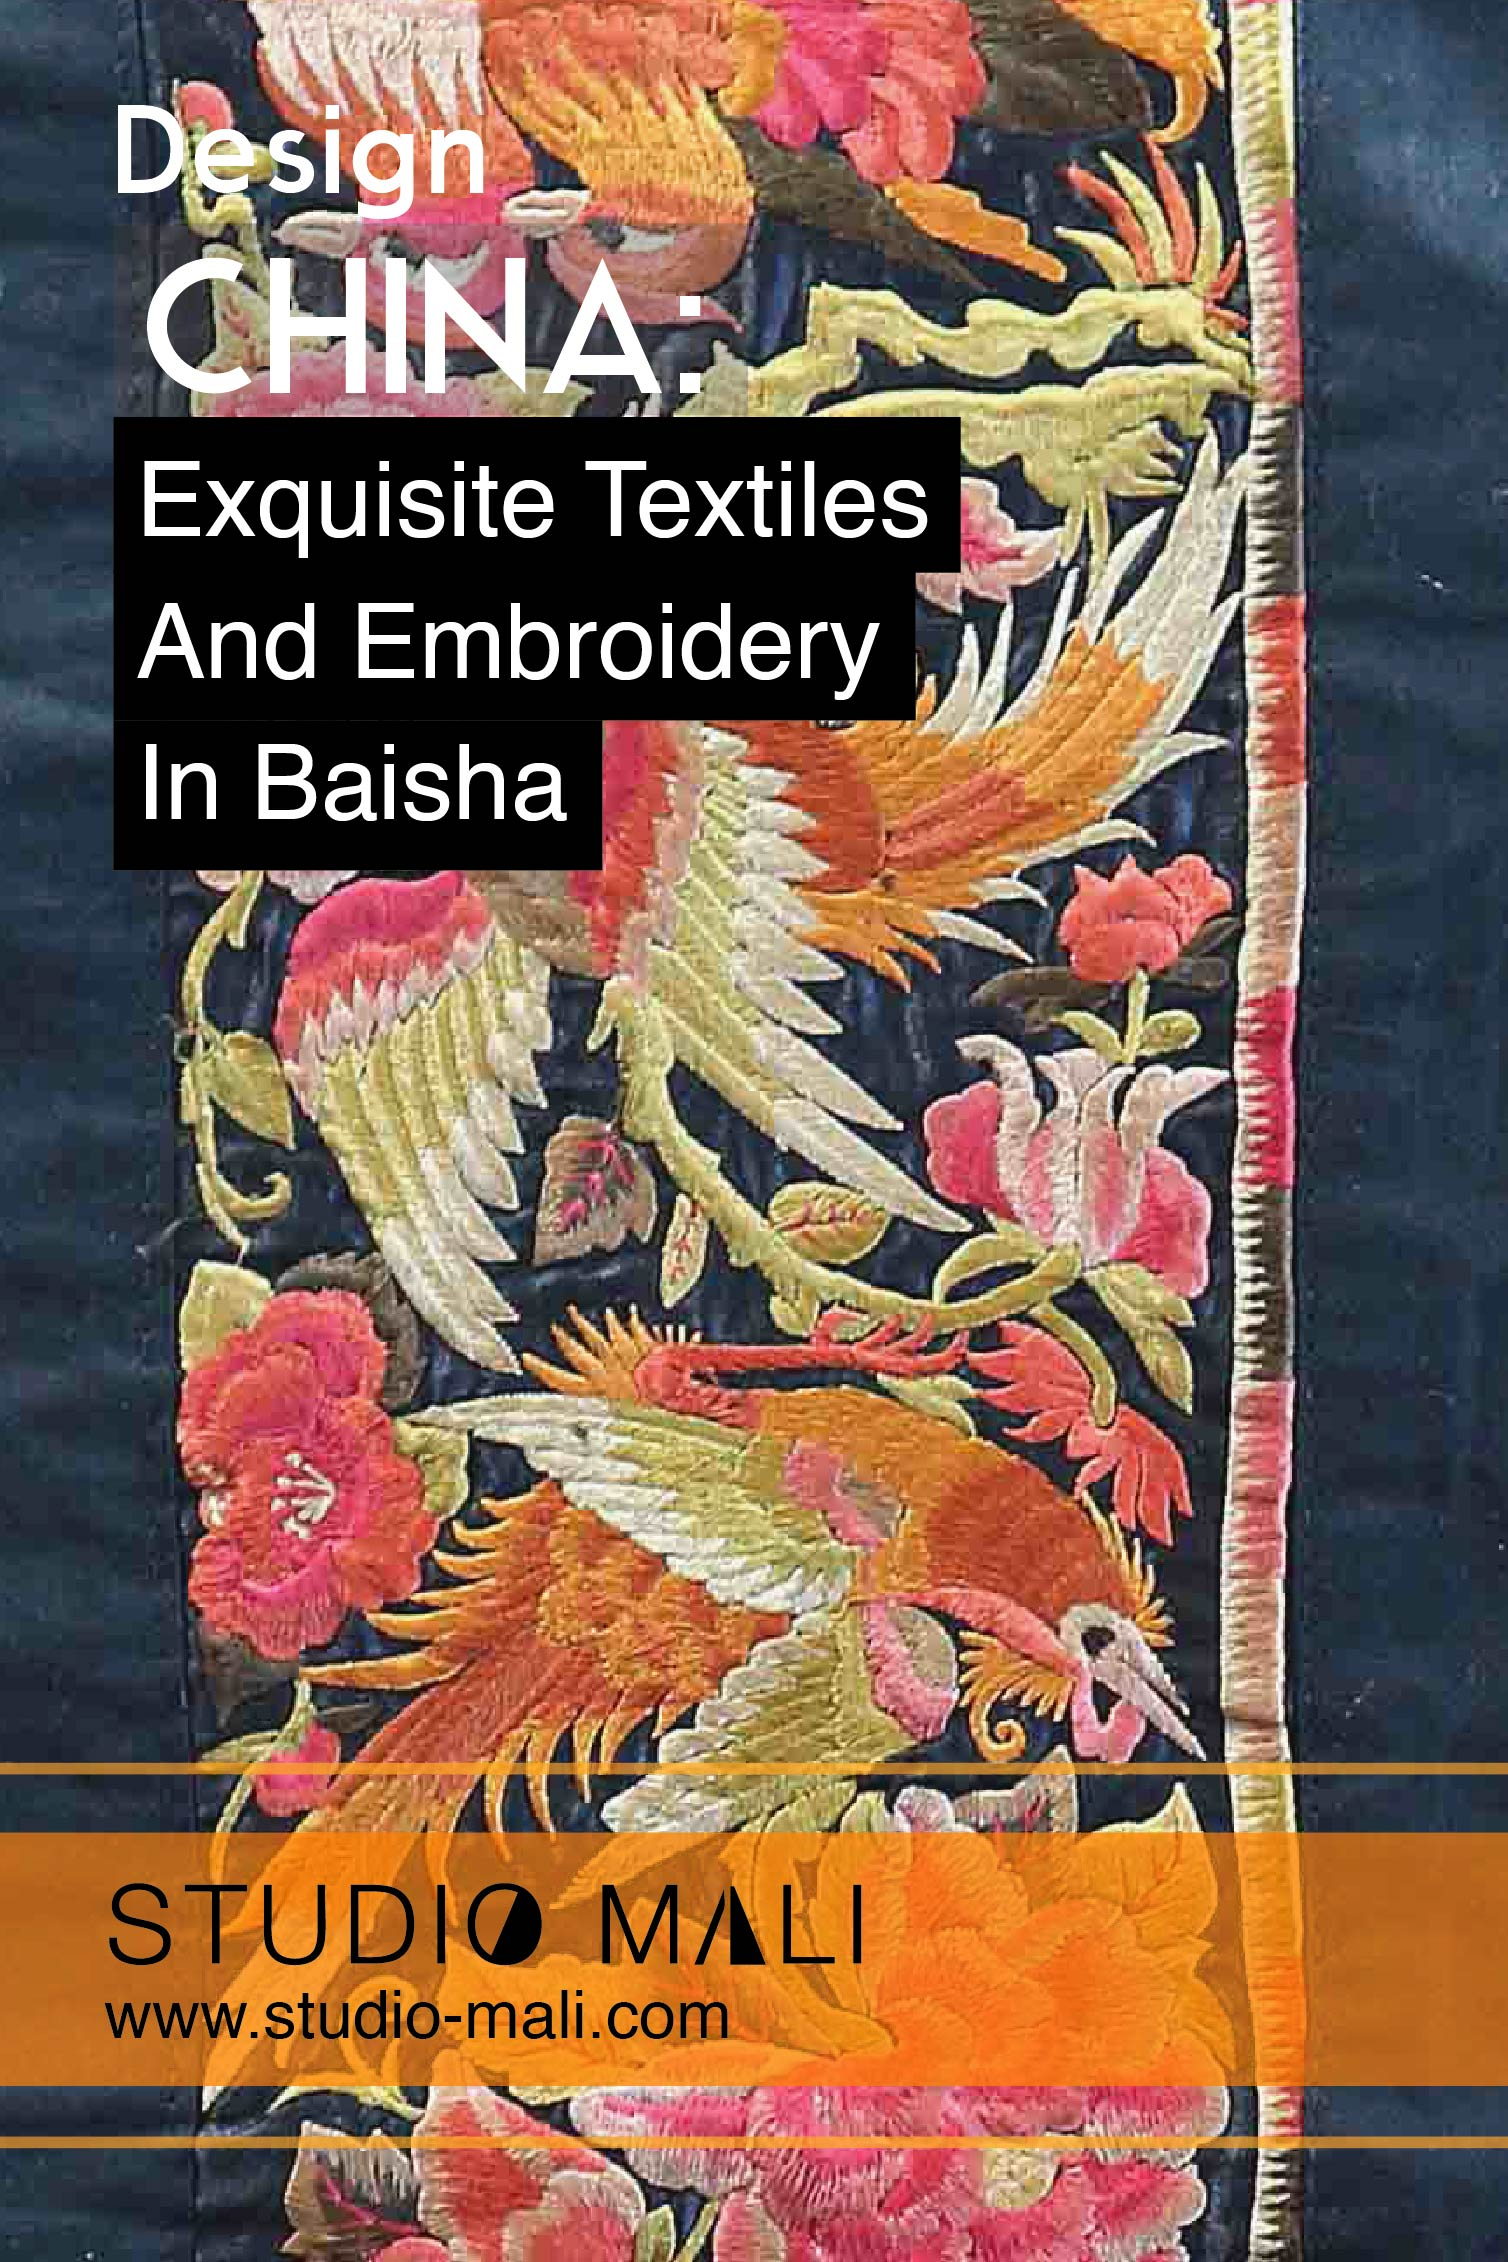 China - Exquisite Embroidery And Textiles In Baisha, by Studio Mali.jpg